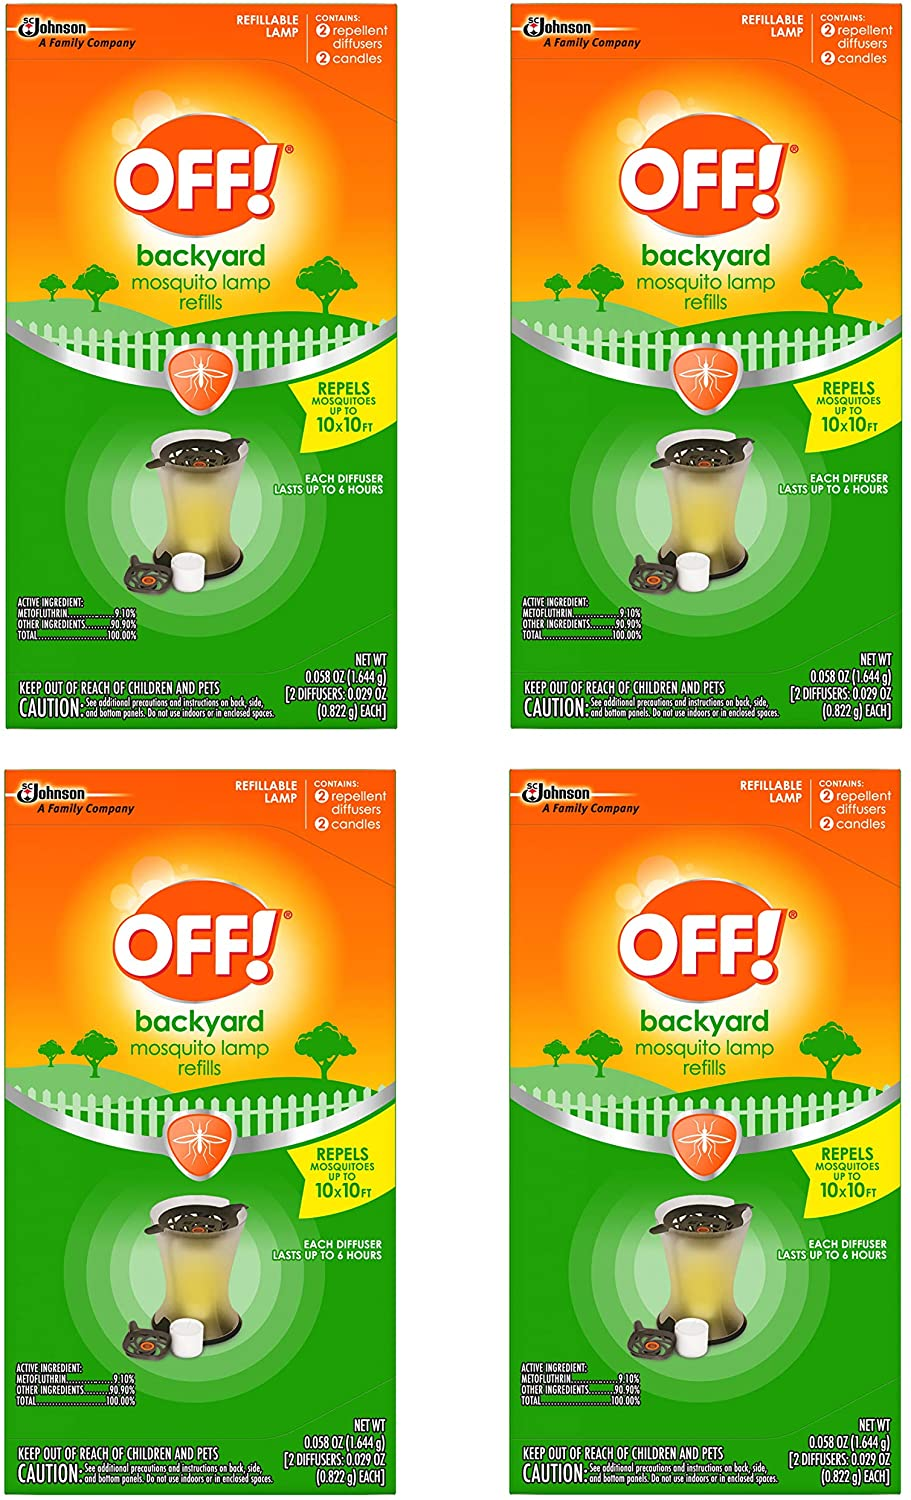 5% OFF OFF Mosquito Lamp Refill 2 New arrival - CT 4 Pack